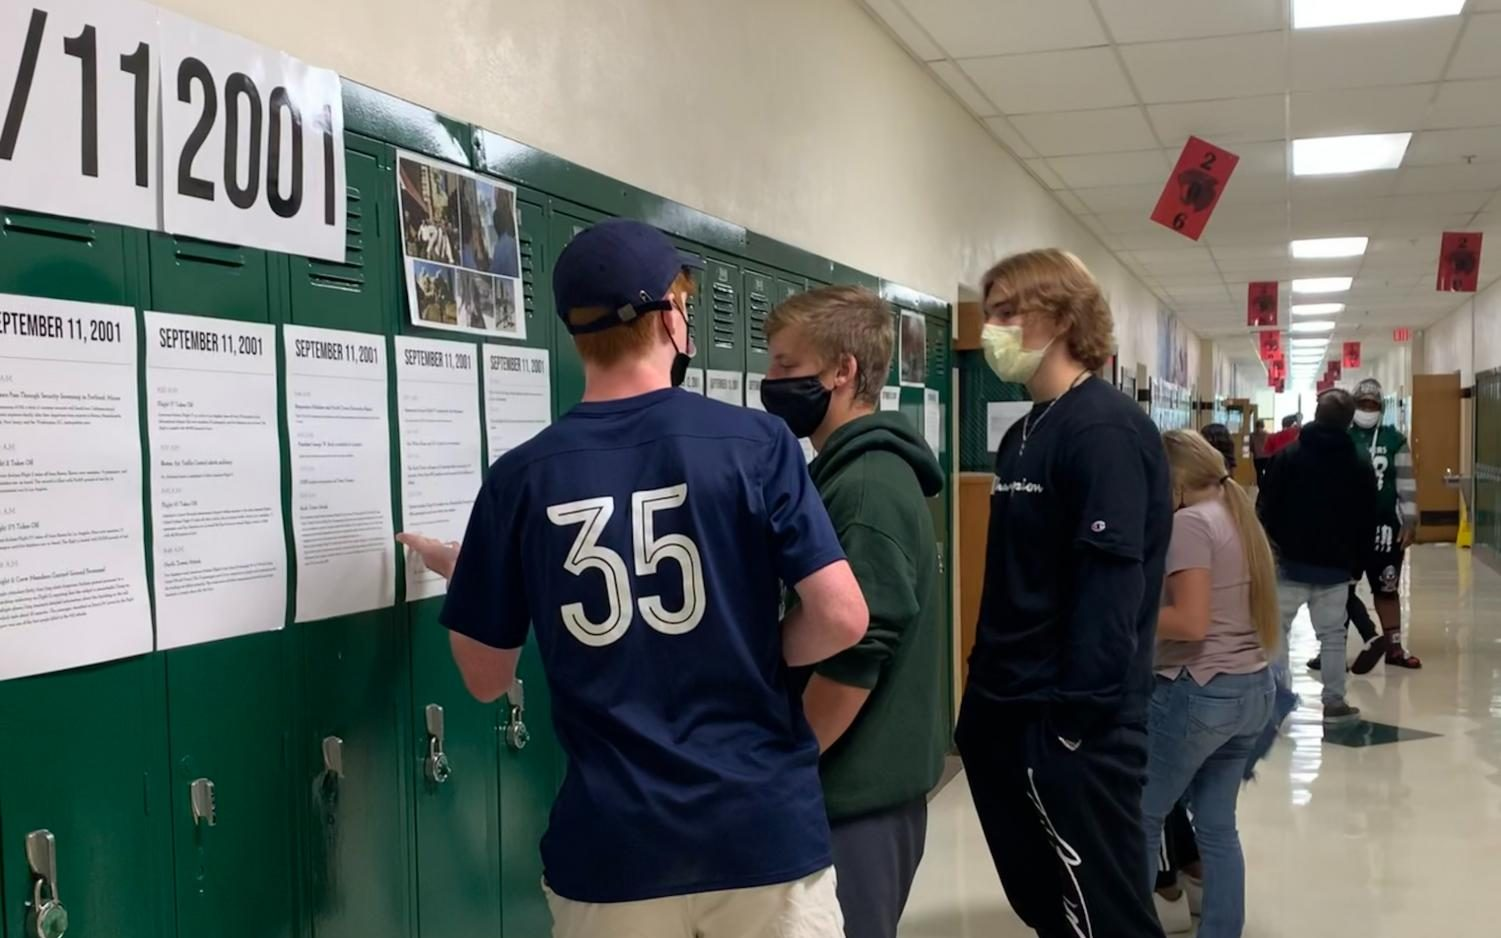 Mehlville Students discuss events on the 9/11 timeline.